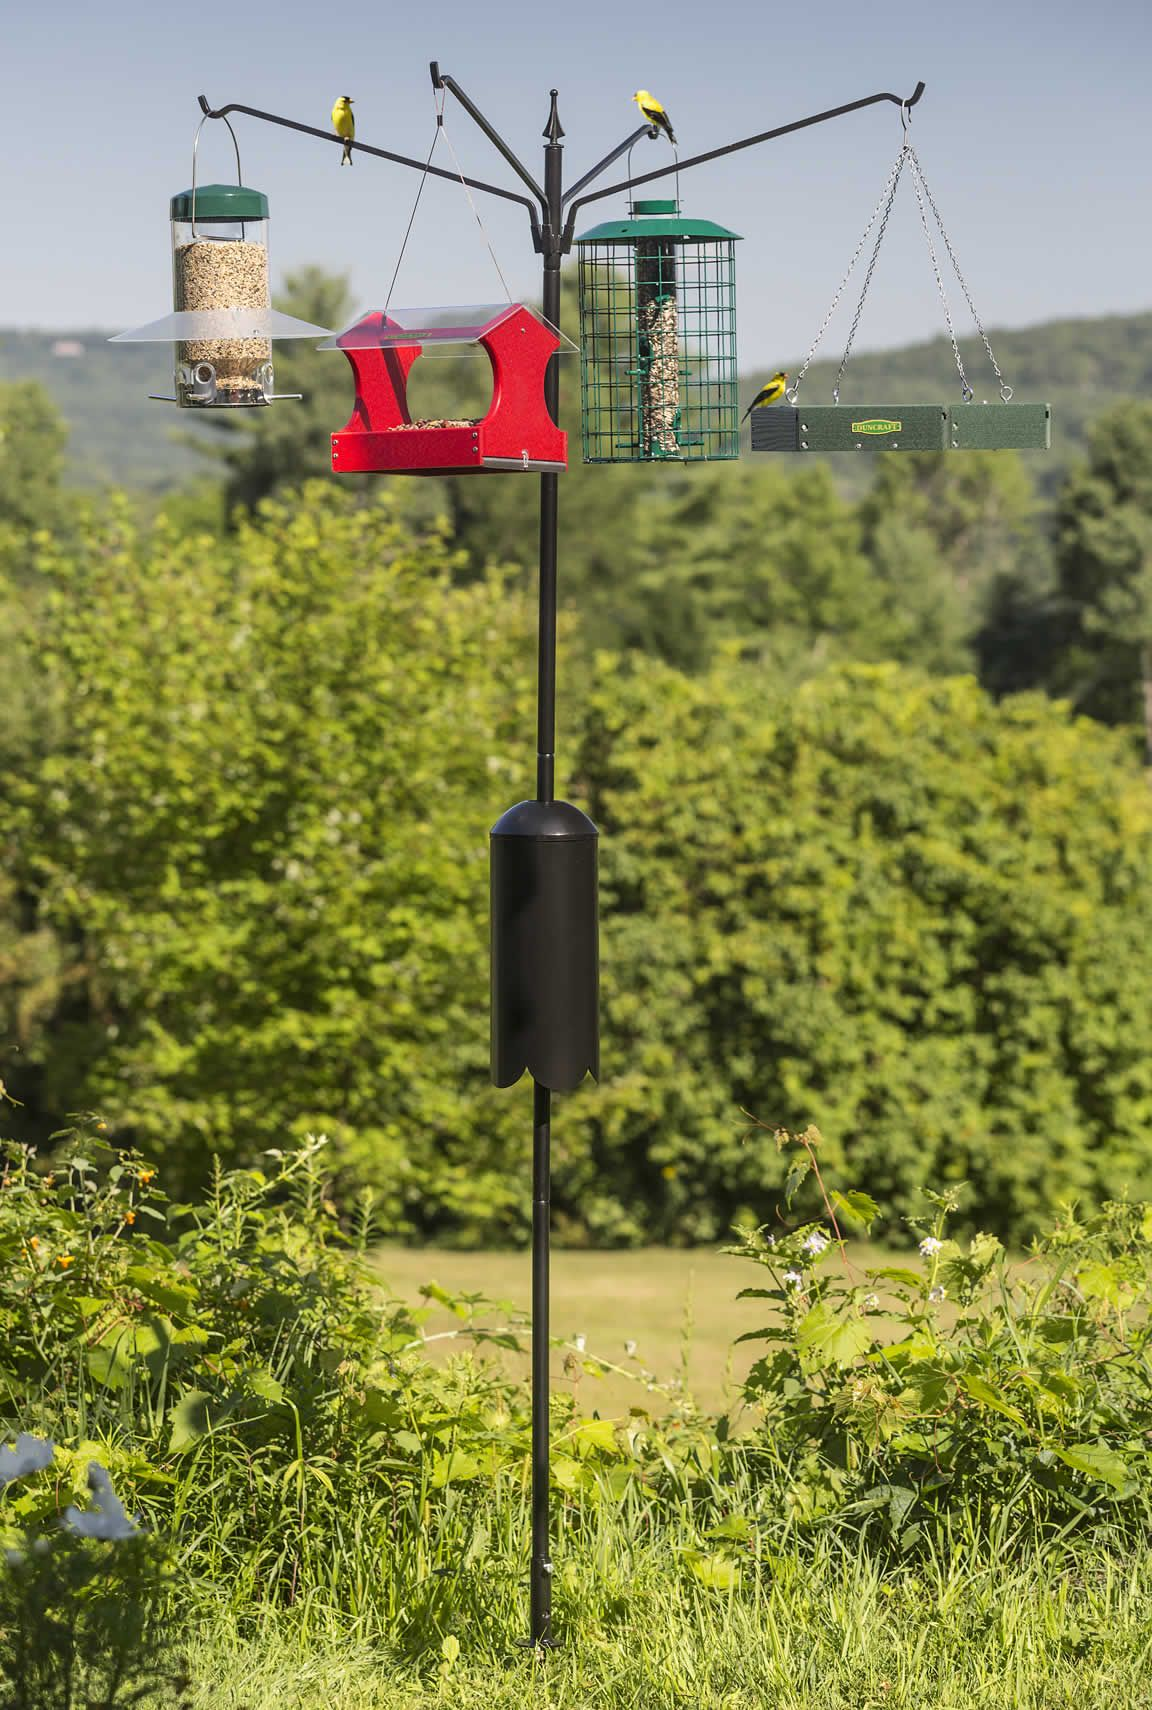 Squirrel-Proof Four Arm Bird Feeding Station: Squirrel-proof feeding station features the widest arm outreach -- perfect for hanging large platforms, baths, hoppers and more. This deluxe solution stands 80 inches above the ground. Each of the four arms holds up to 20 pound and extends 22 inches out to hold the widest feeders!